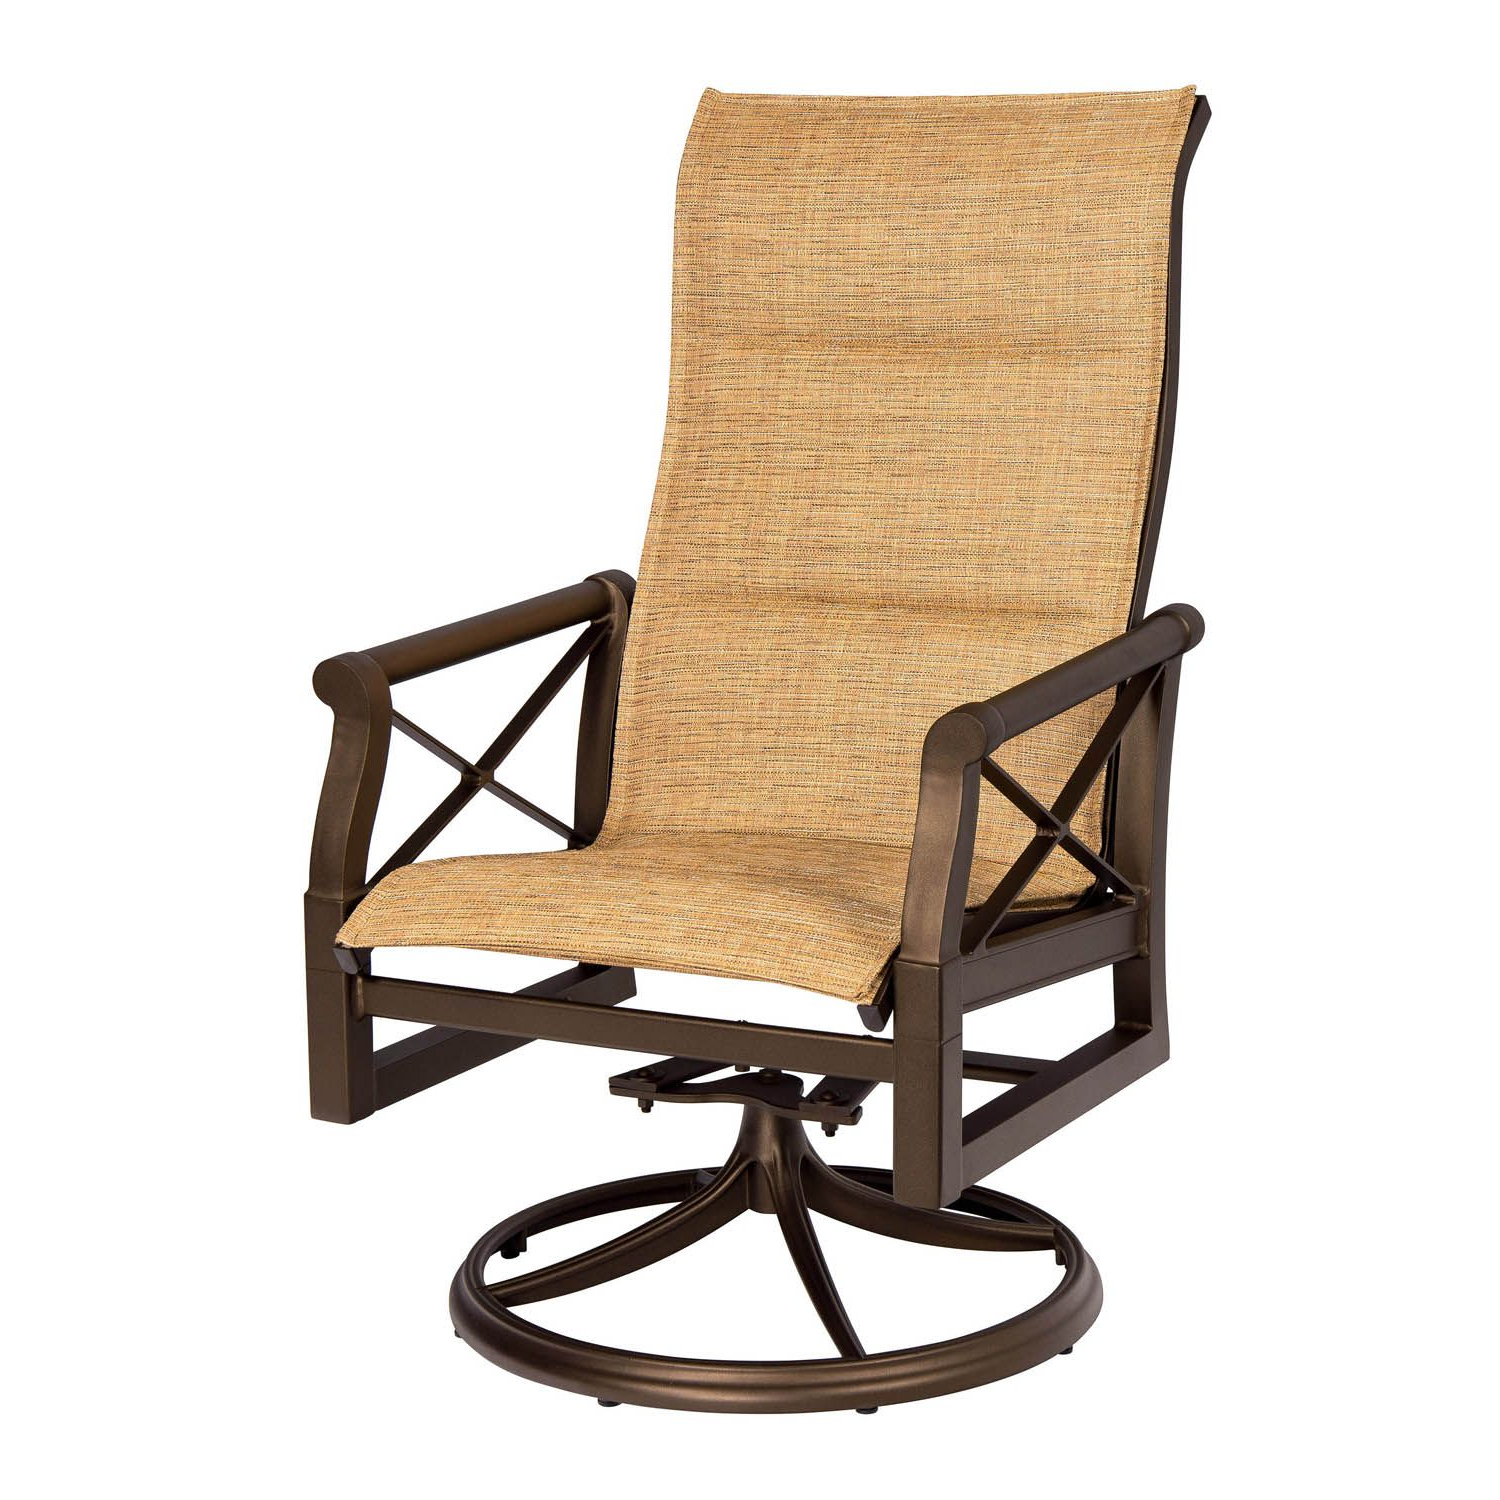 Andover Padded Sling High Back Swivel Rocking Dining Armchair Throughout Current Padded Sling High Back Swivel Chairs (View 5 of 30)